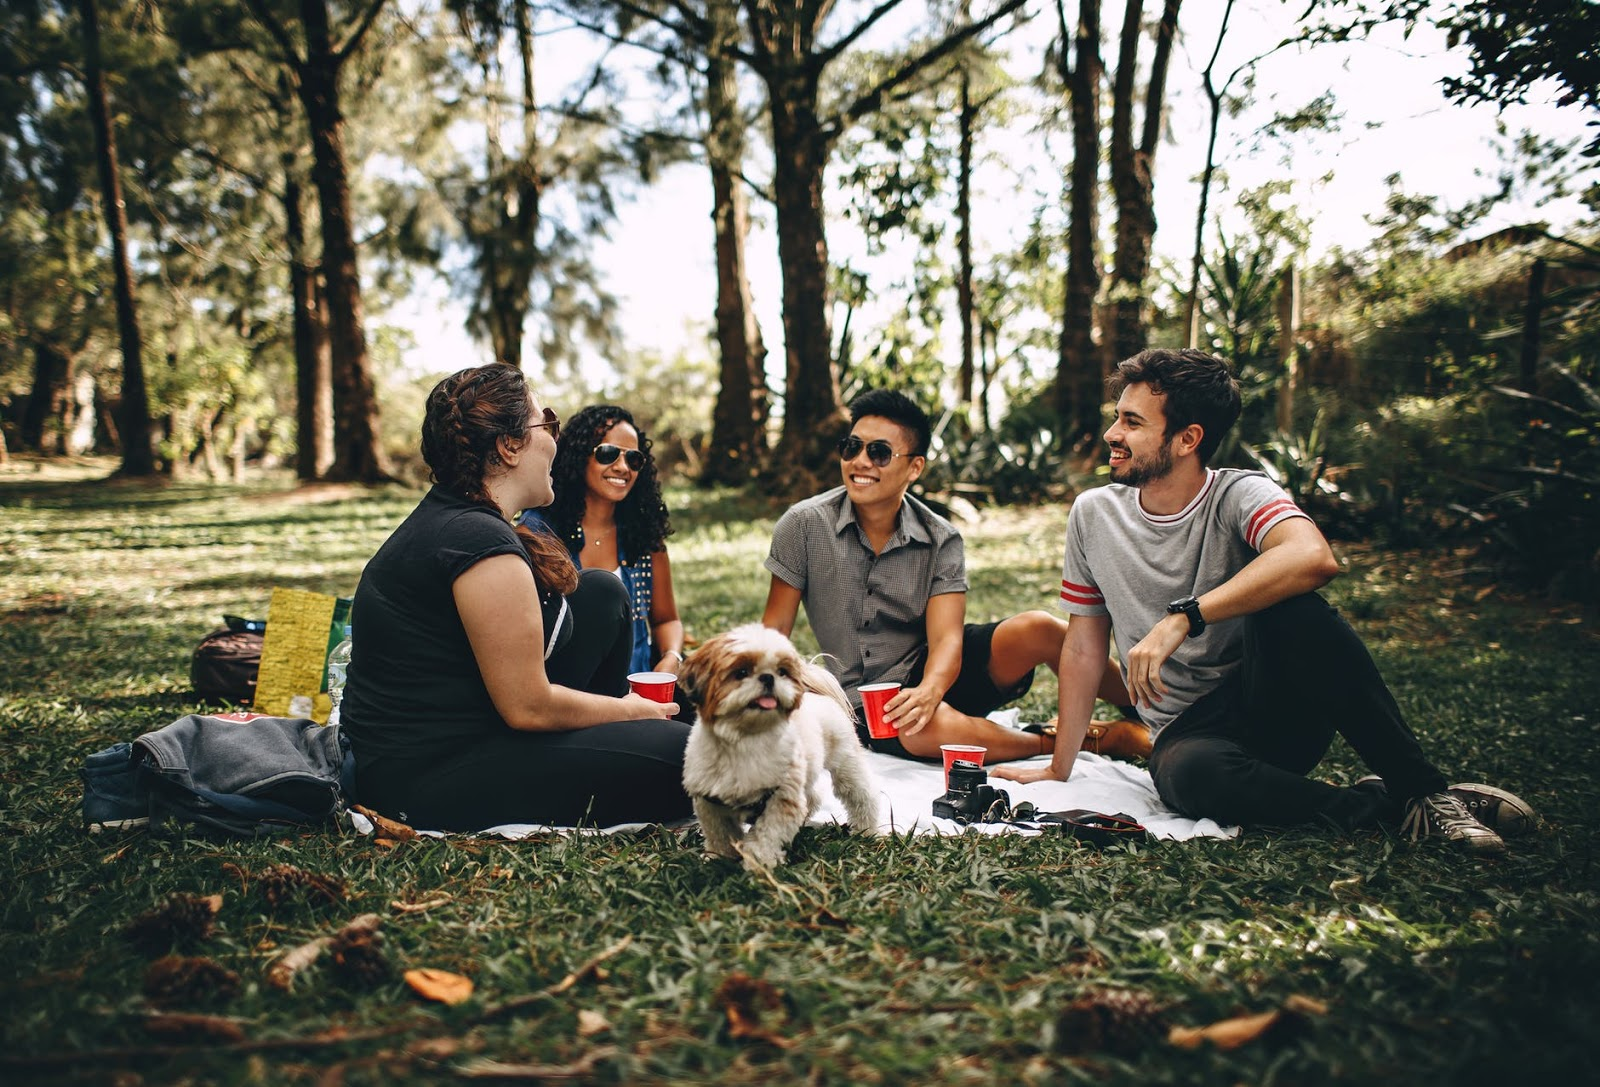 Four friends smiling and laughing with their dog while picnicing on a blanket in a park.